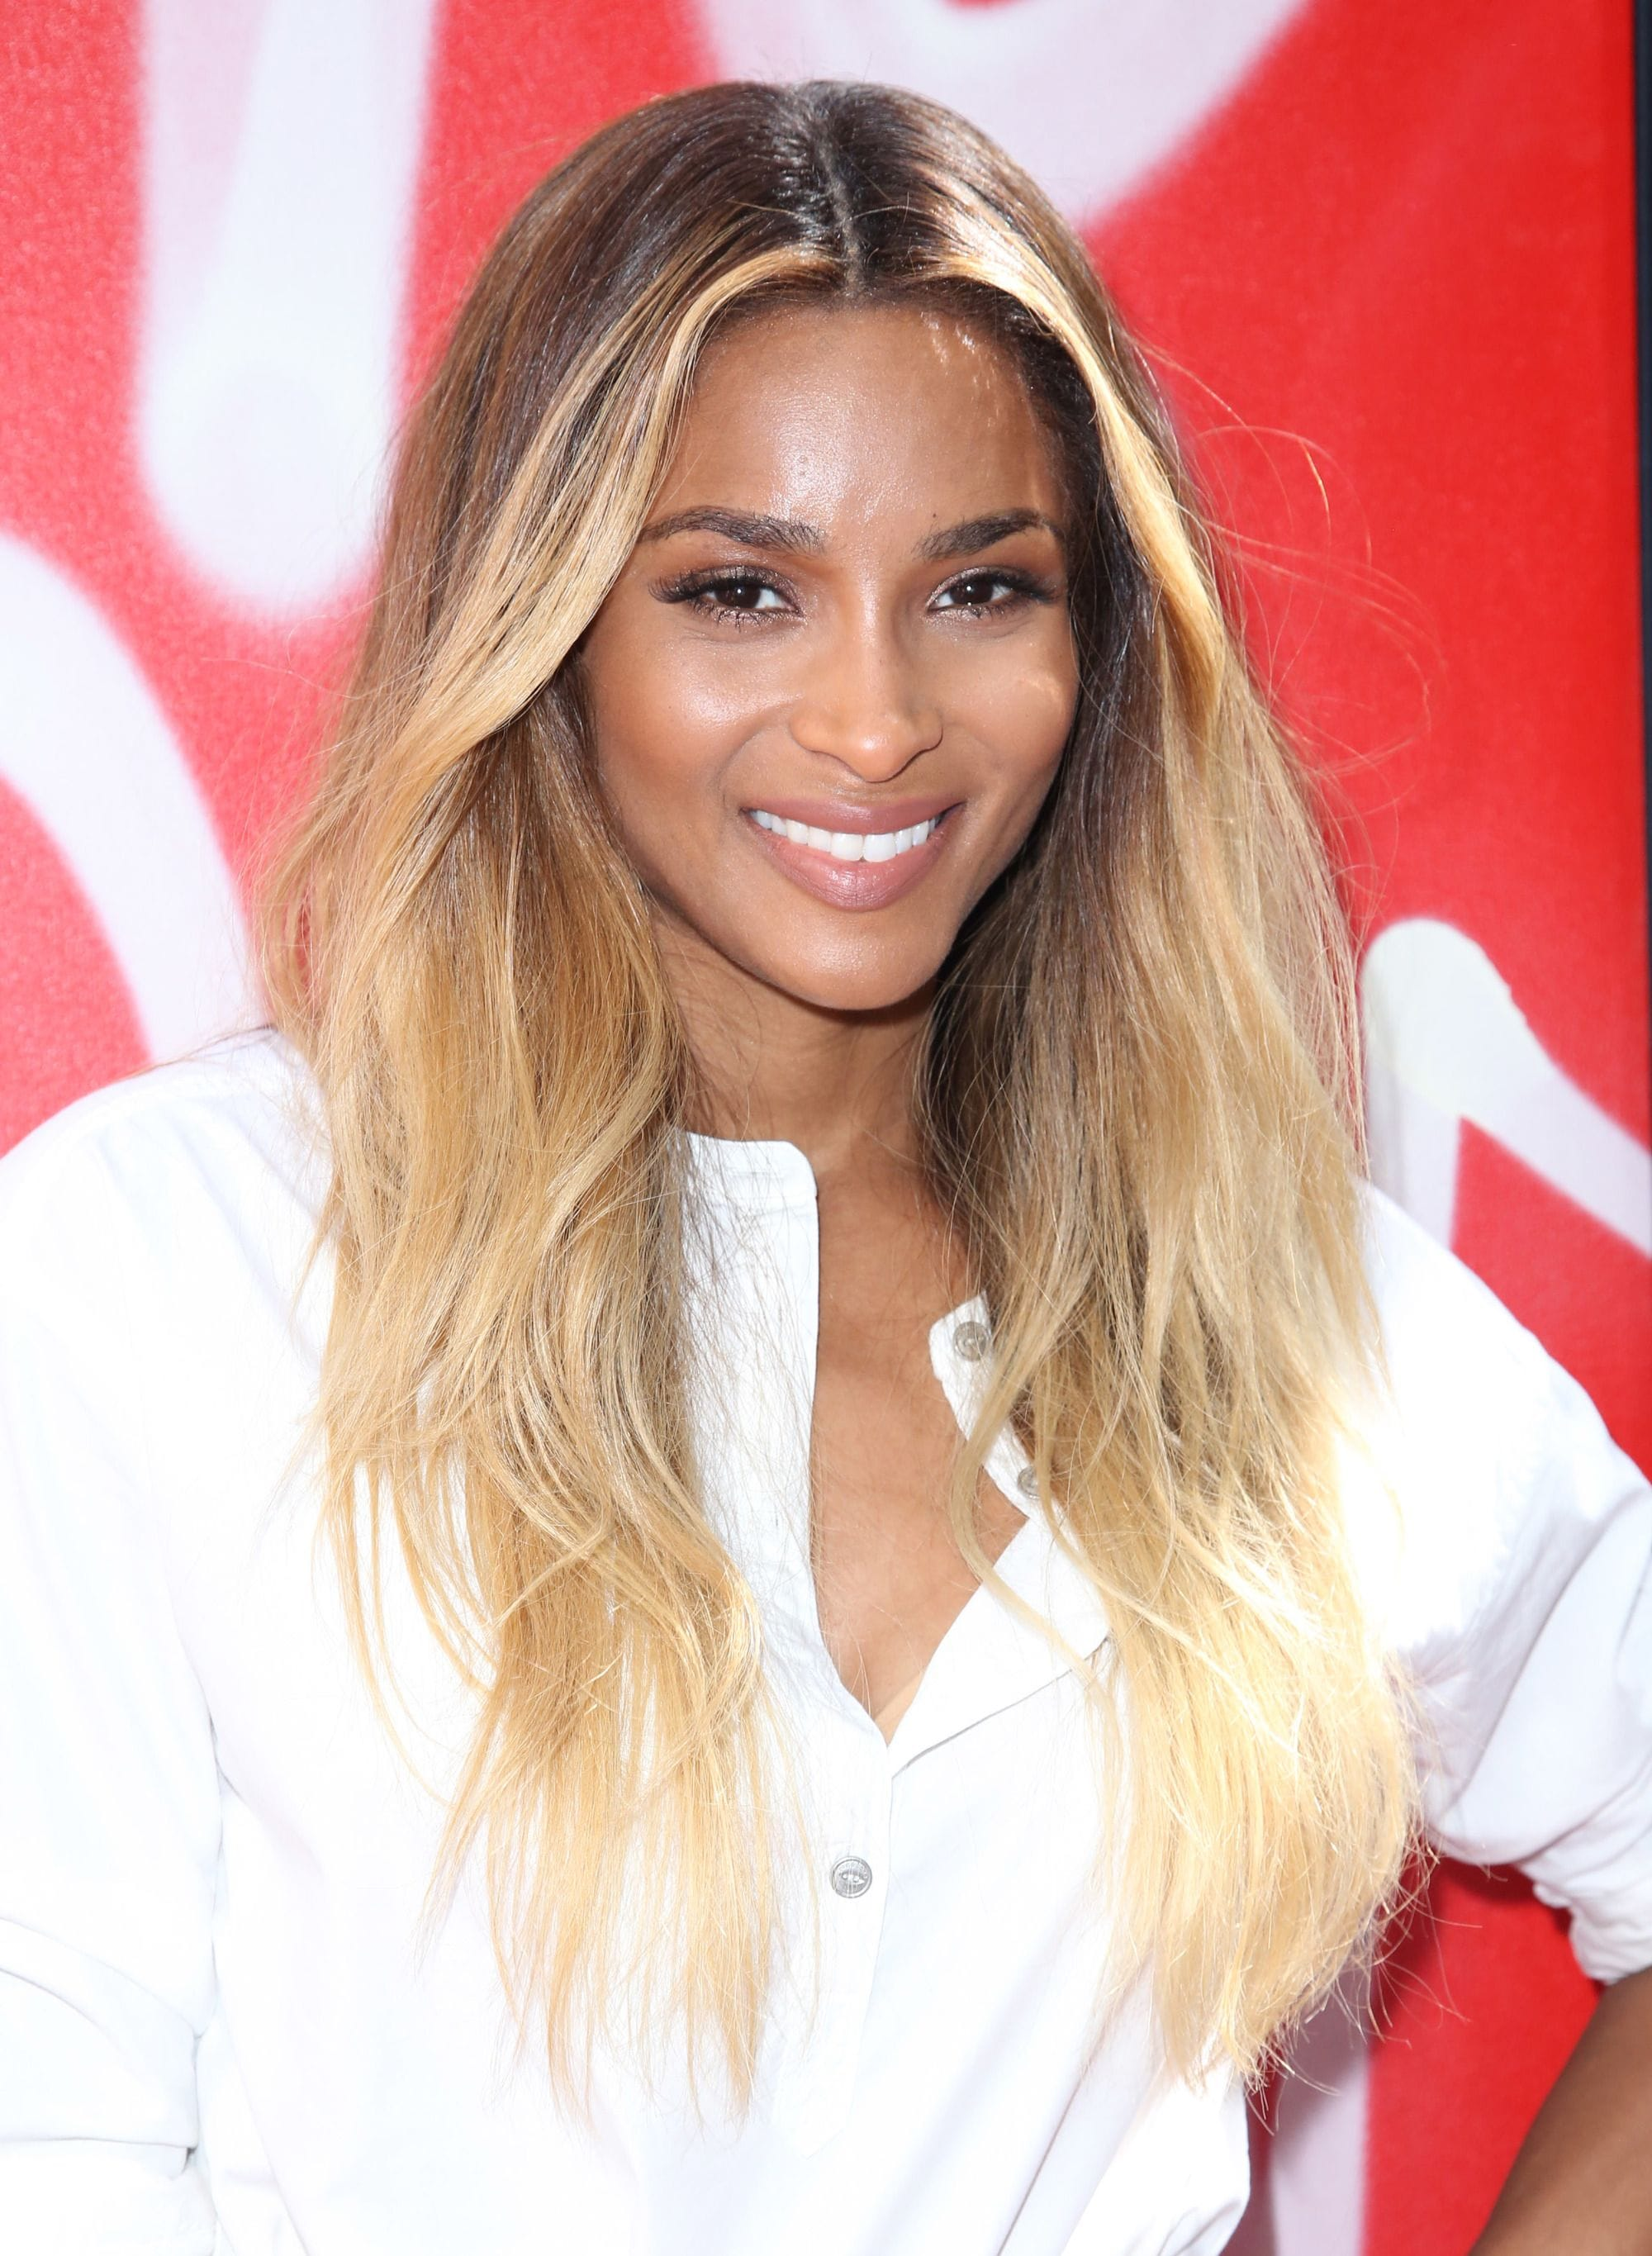 Blonde hair: Close up shot of Ciara with caramel blonde wavy hair.